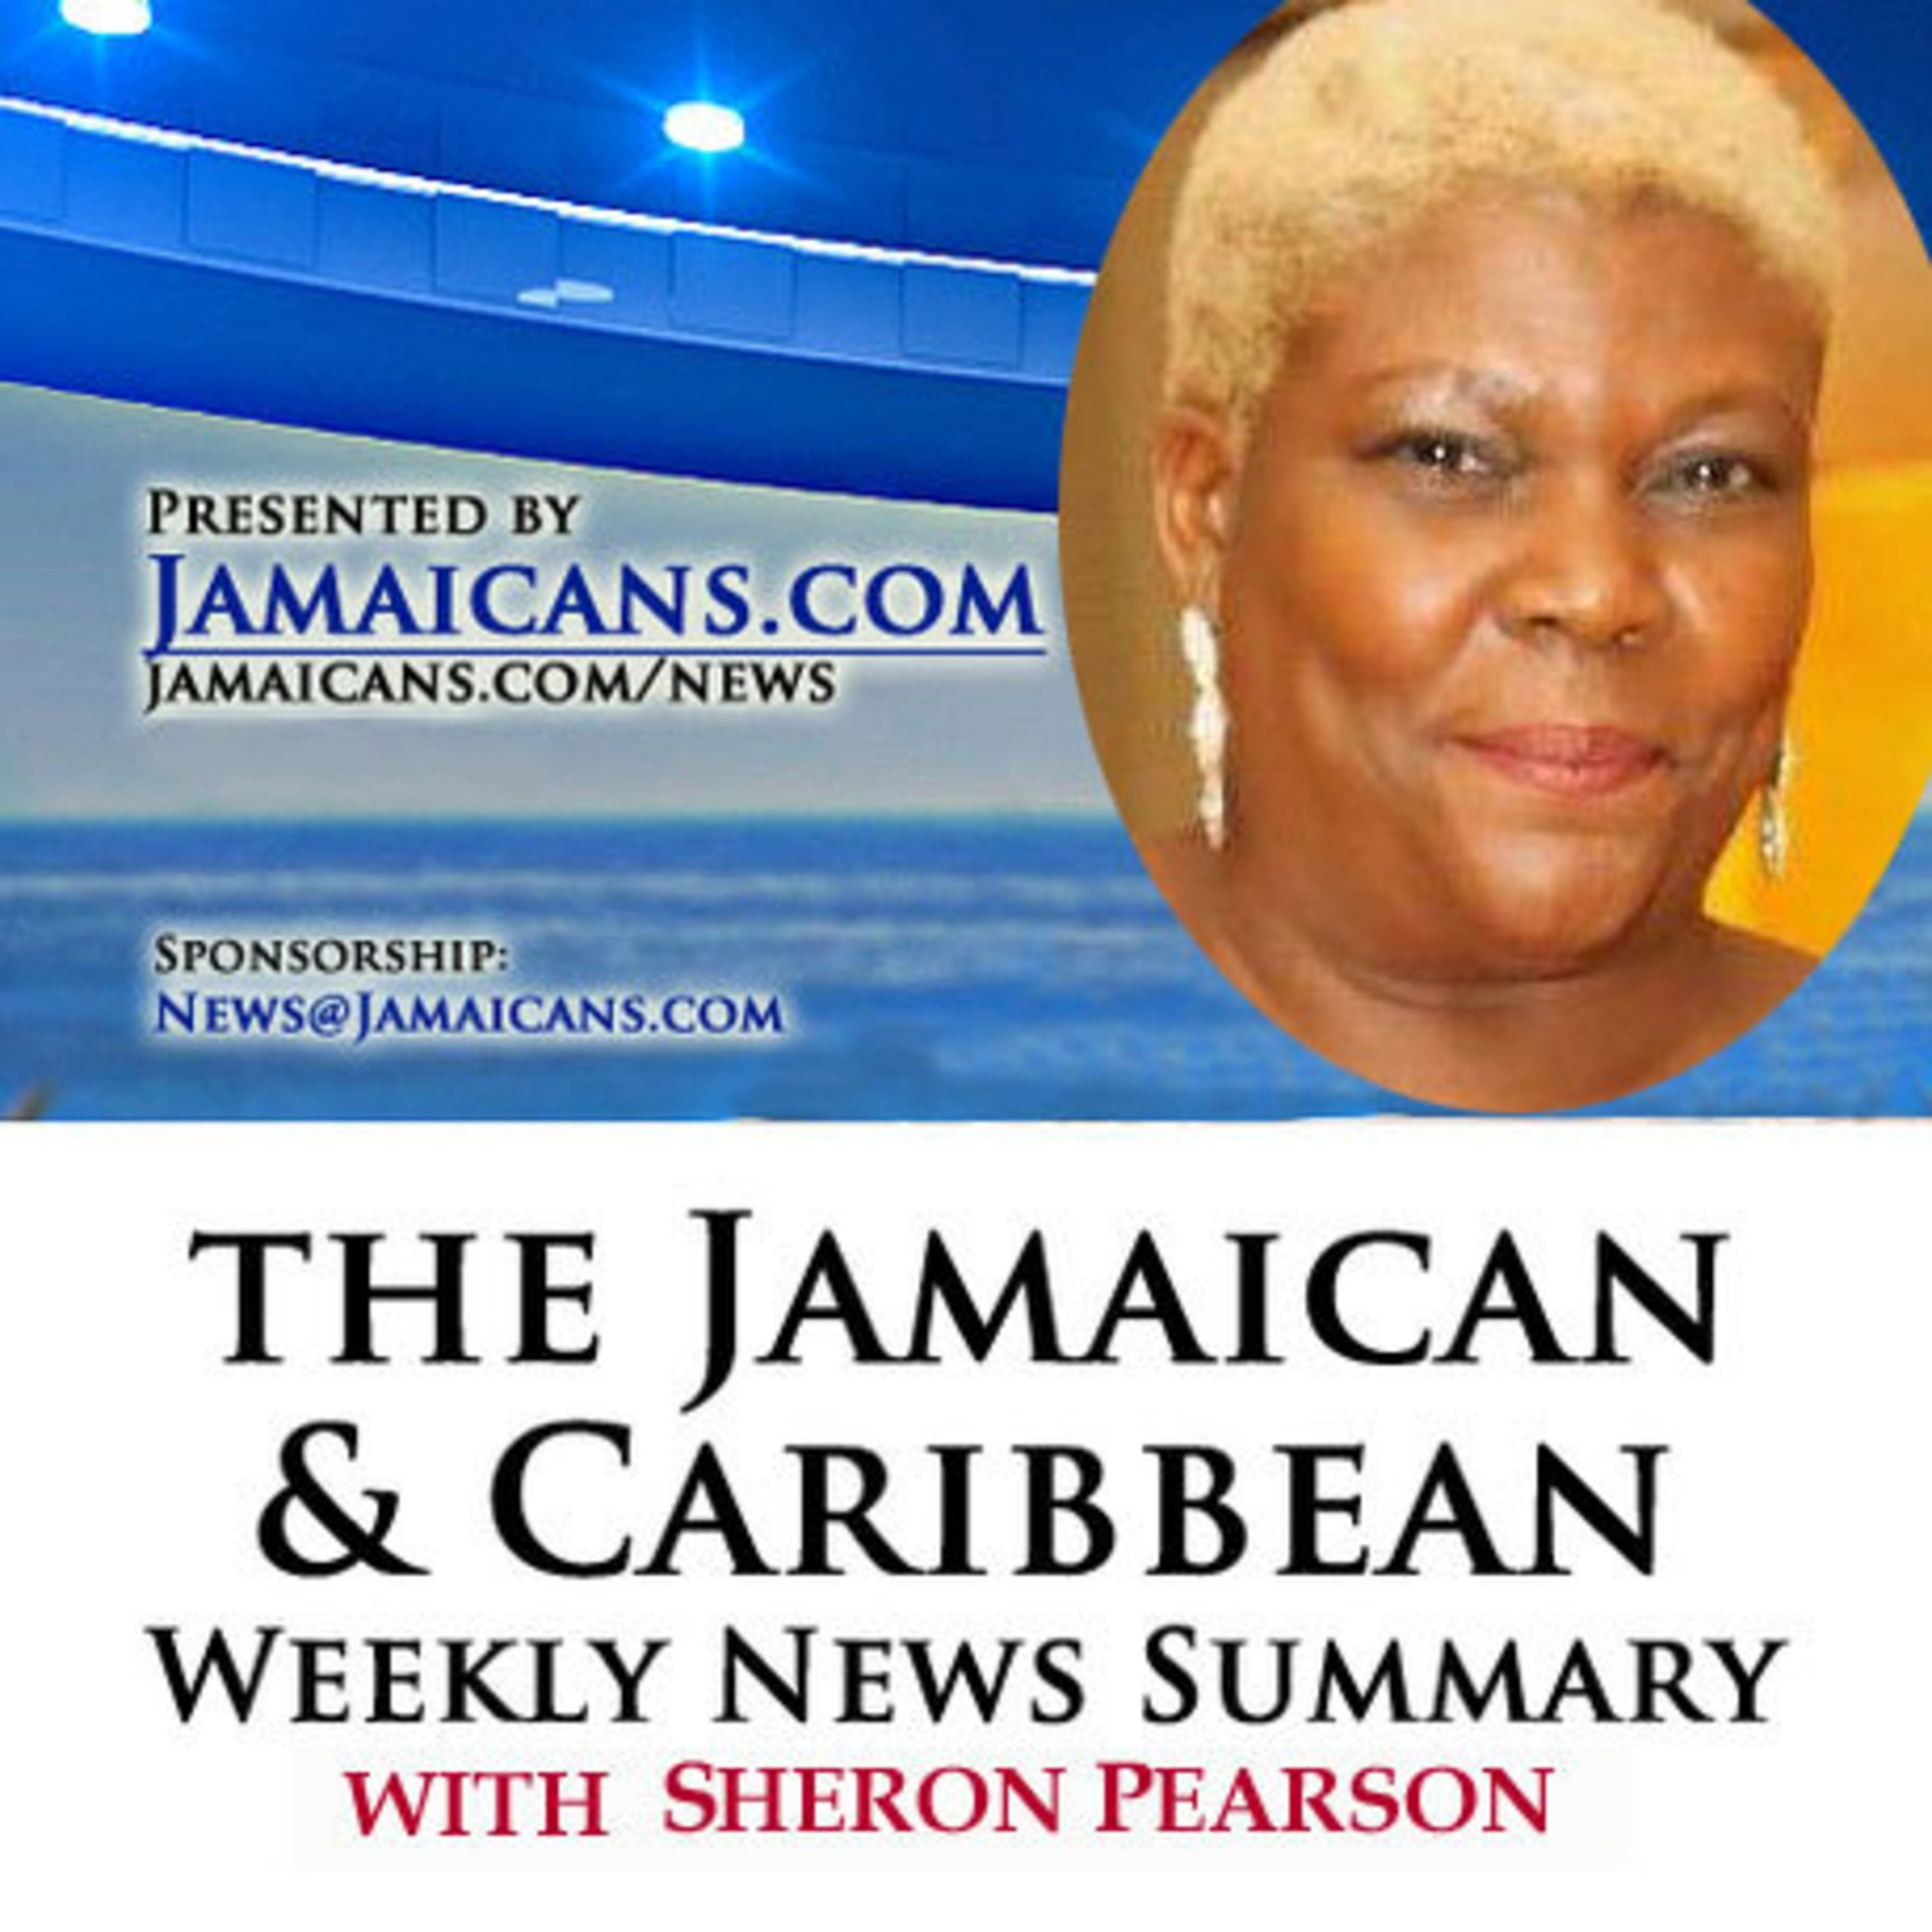 Listen to the Podcast of The Jamaica & Caribbean Weekly News Summary for the week ending June 12, 2020